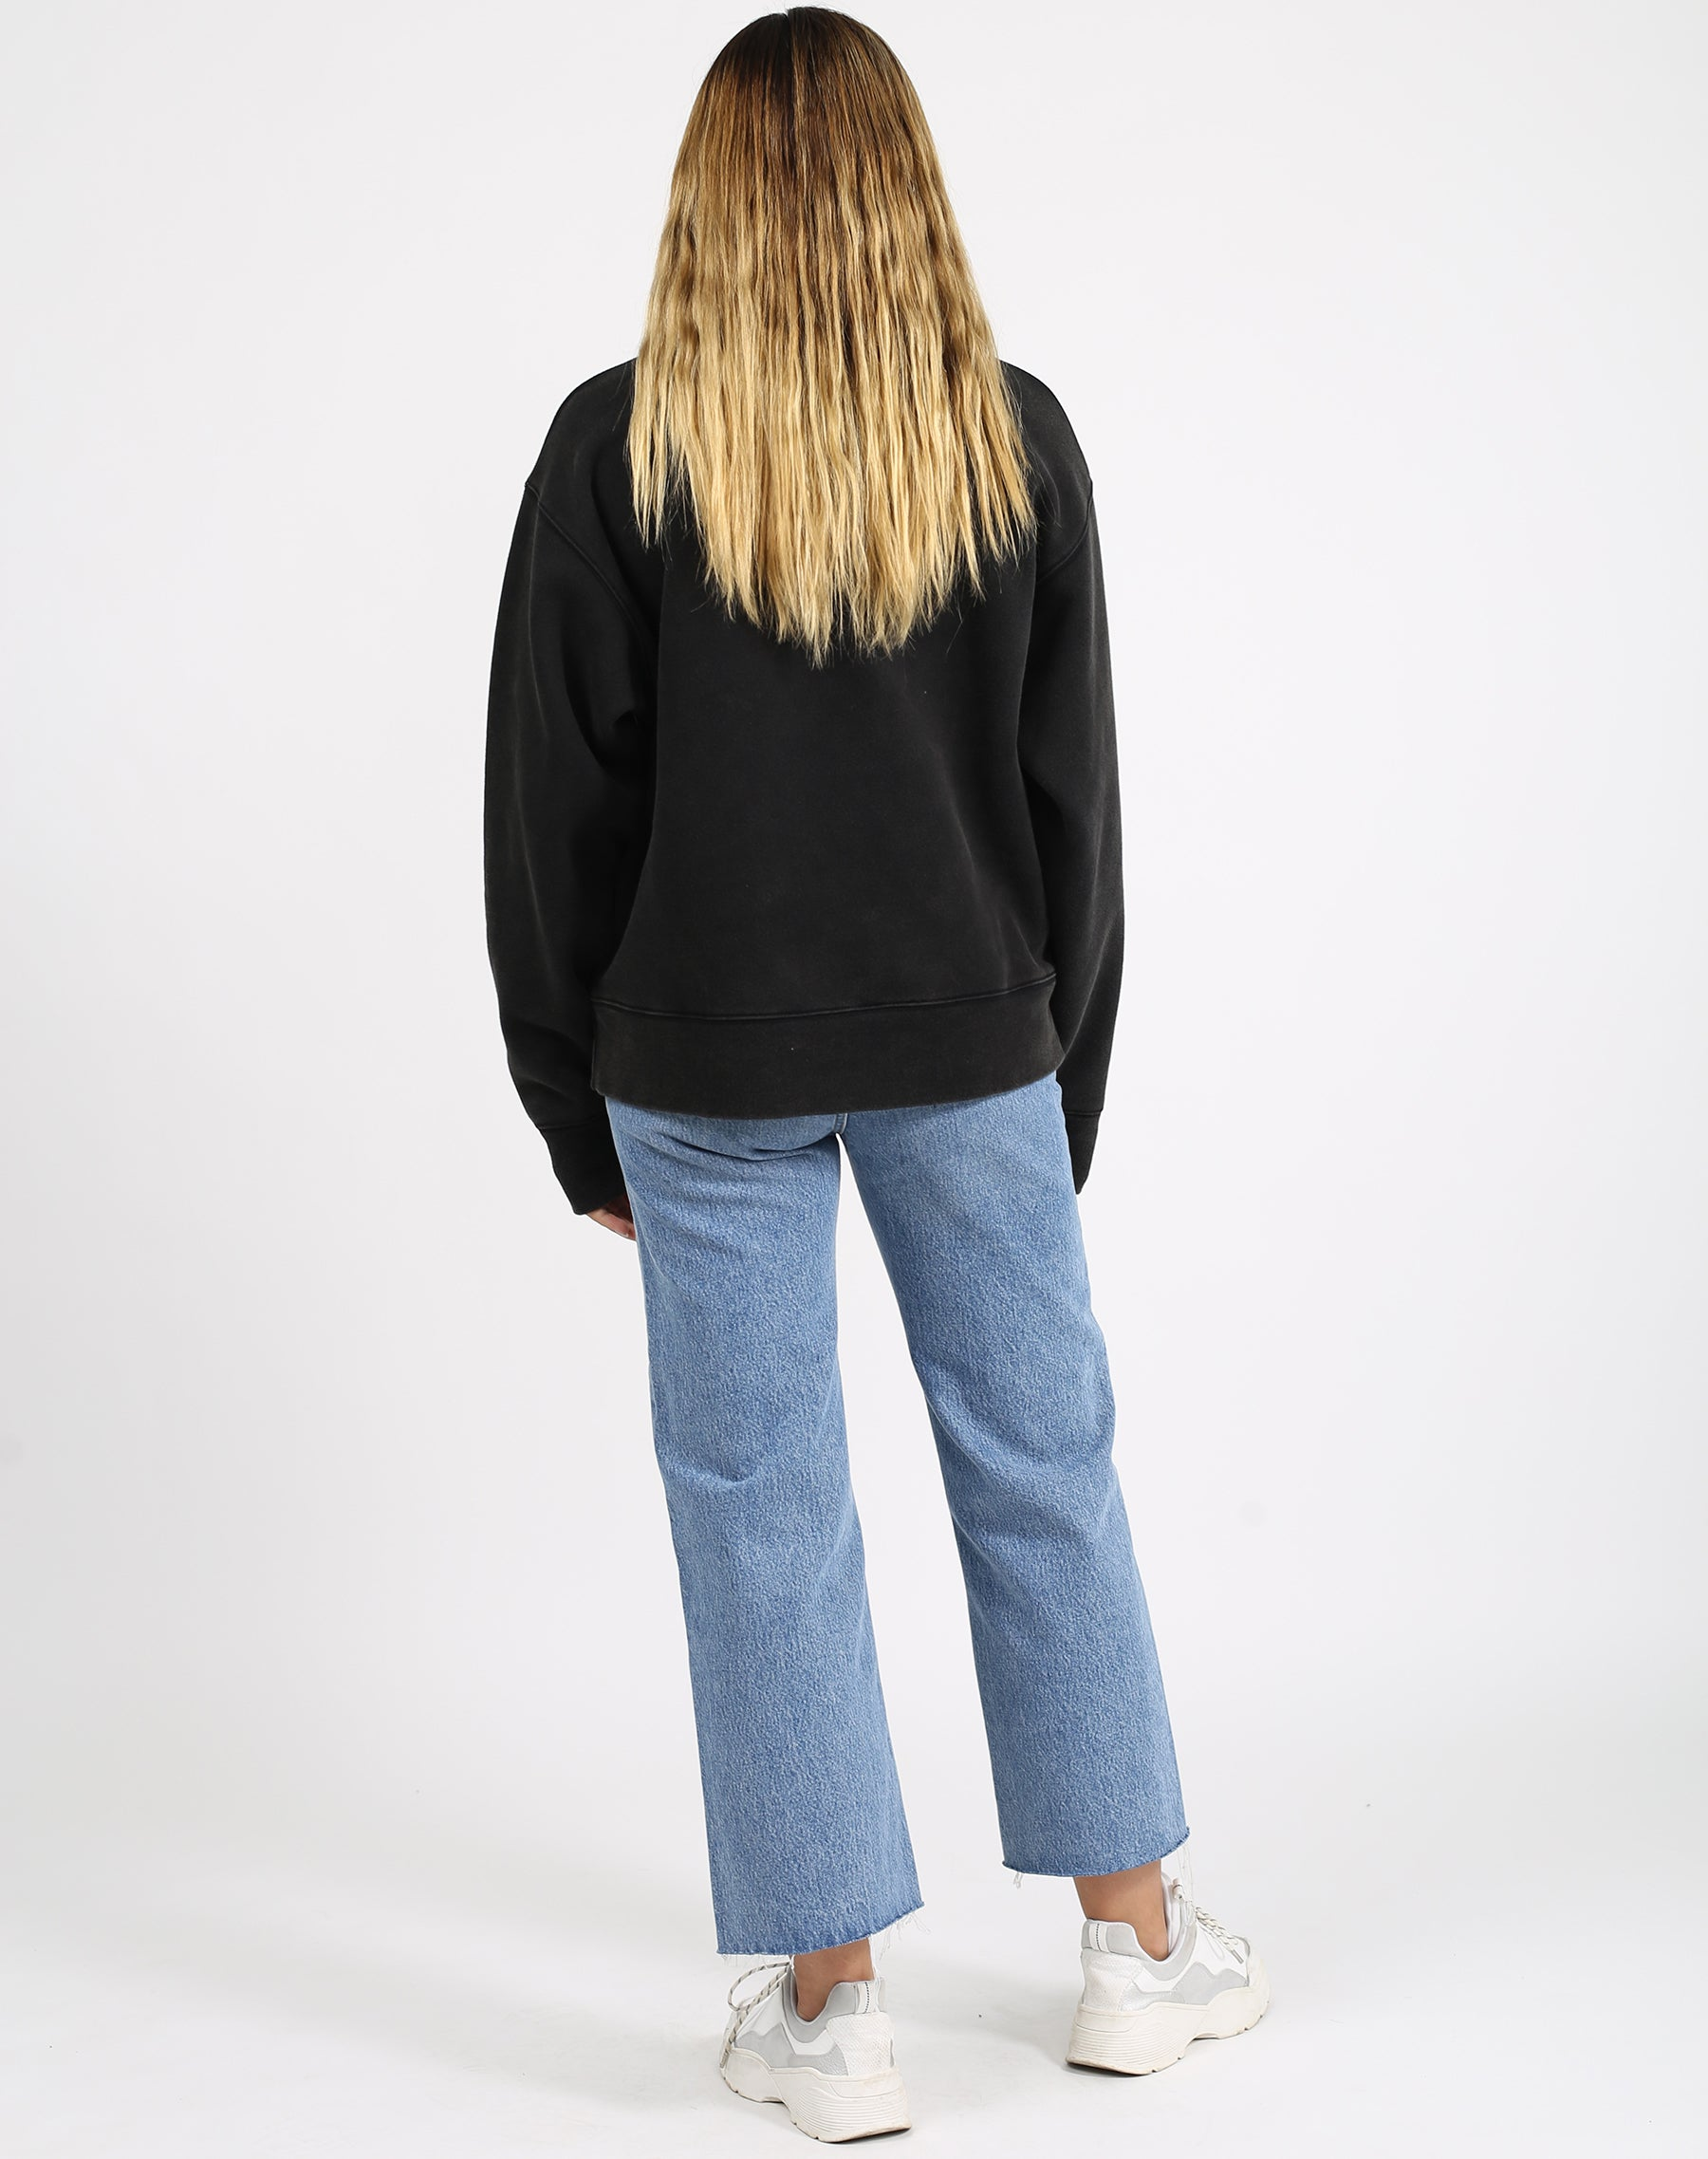 This is a photo of a the back of a model wearing the blonde varsity step sister crew neck sweater in acid wash black by brunette the label.